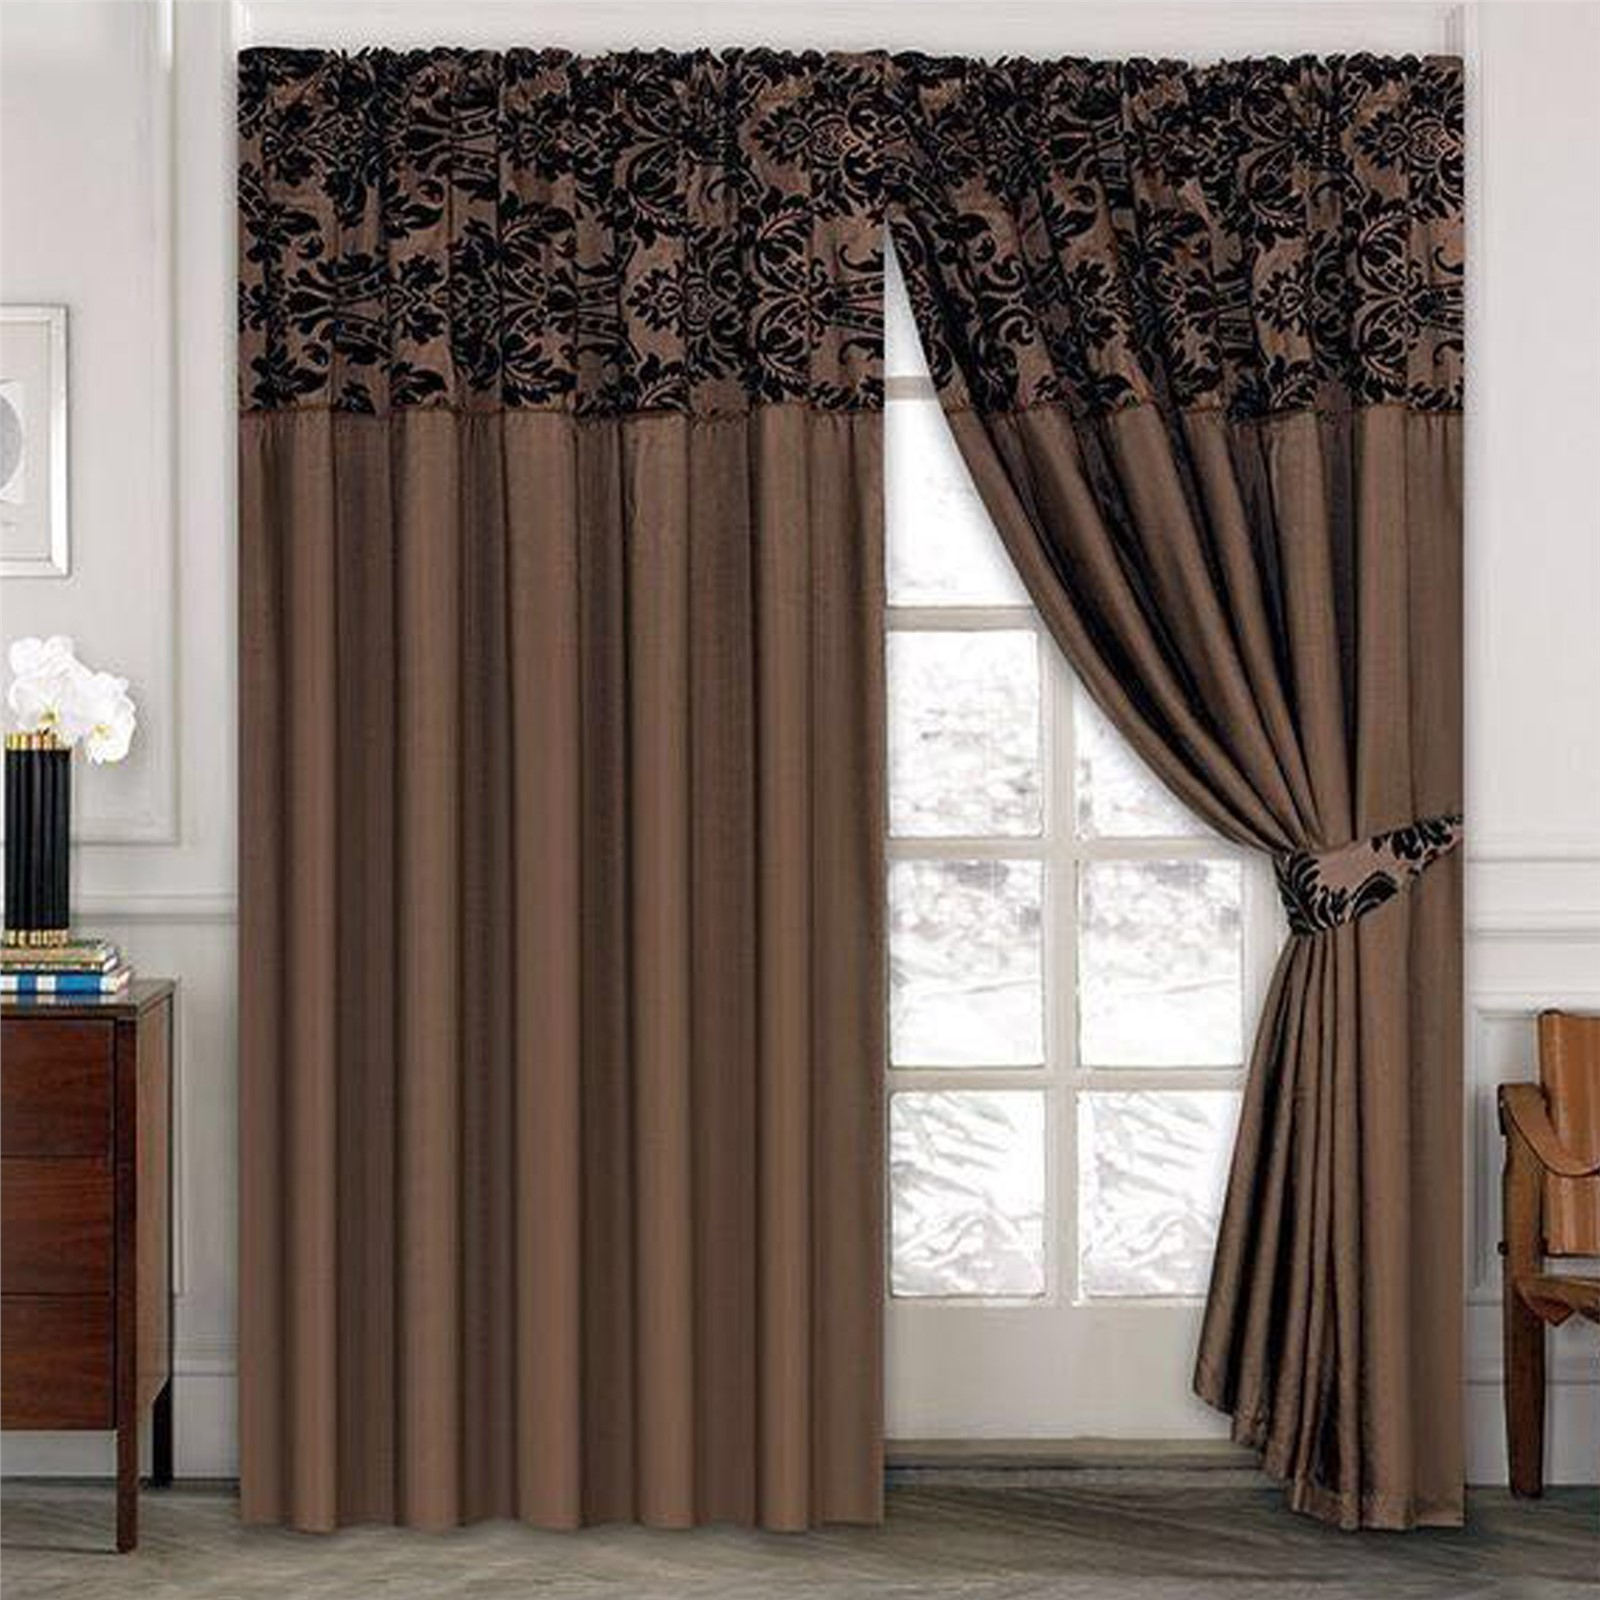 full of ideas drapeswhitelack curtainswhite setwhite kitchen and damask size photo curtains fearsome white curtain inspirations grey bathroom drapes black